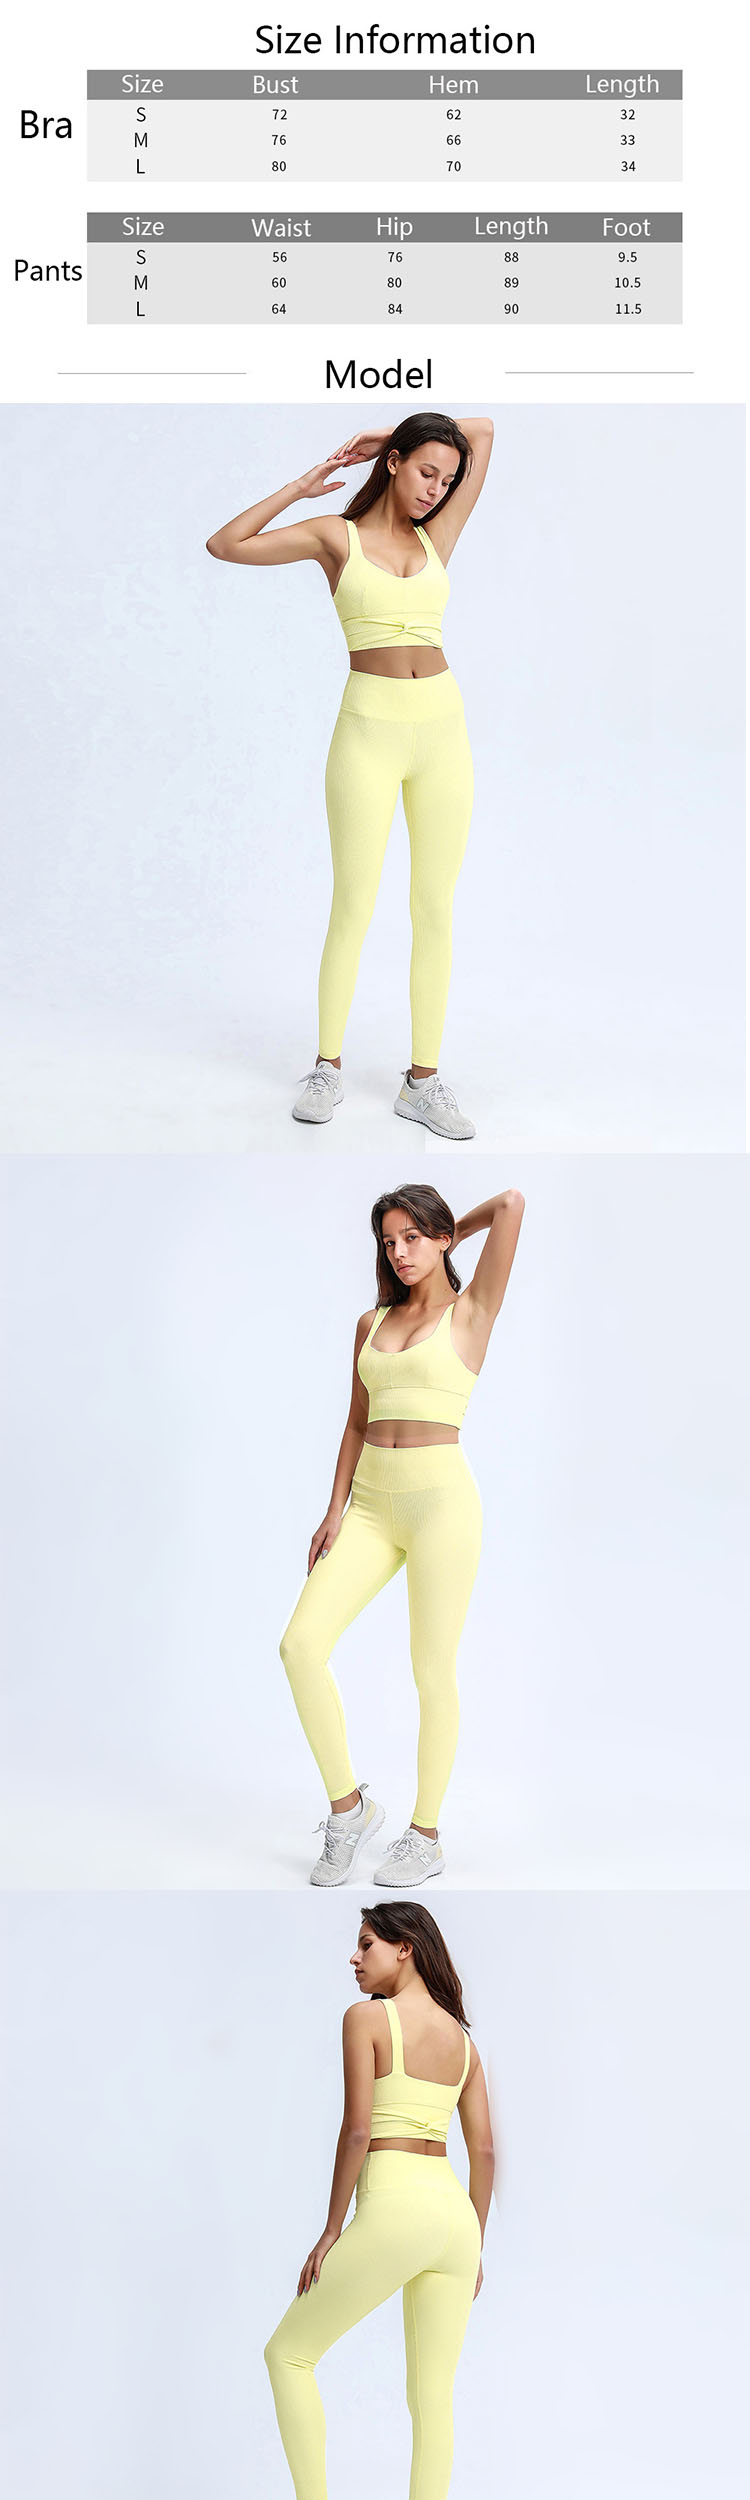 Superdry sport leggings are one of the classic elements